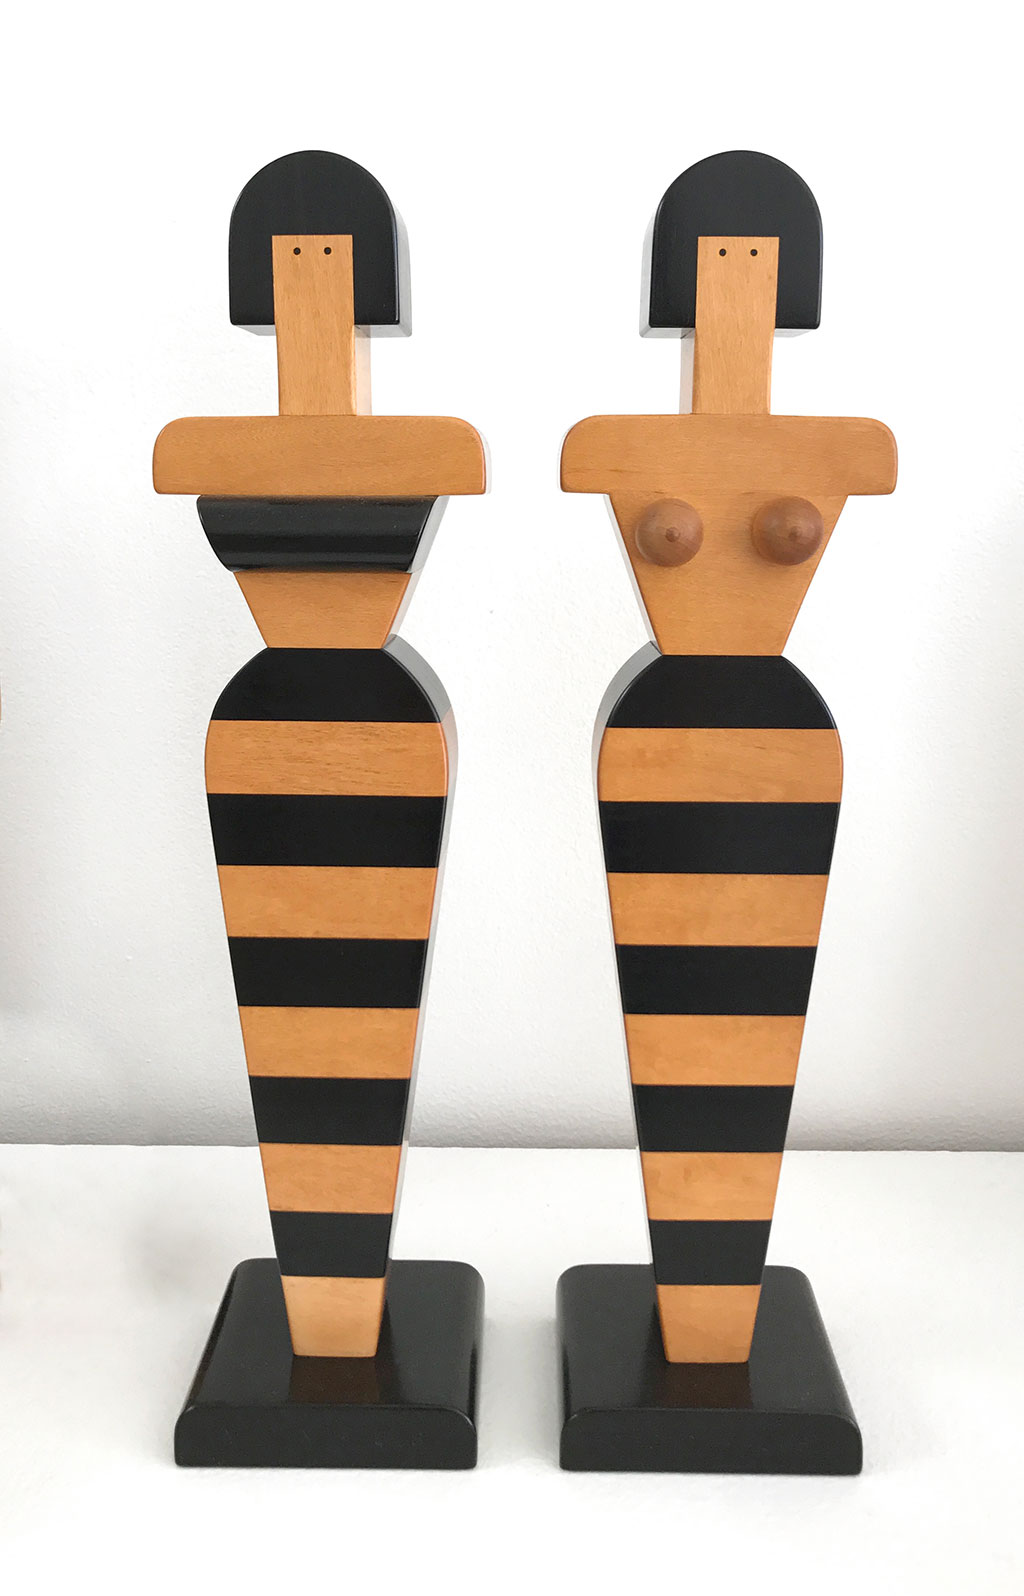 Made to Play, Pamela Weir-Quiton, Ven-us (left), 1992, Ebony and Maple, edition of 3; God-us (right), 1998, Wooden Acorn Boobs, Ebony and Maple, edition of 3, Craft in America